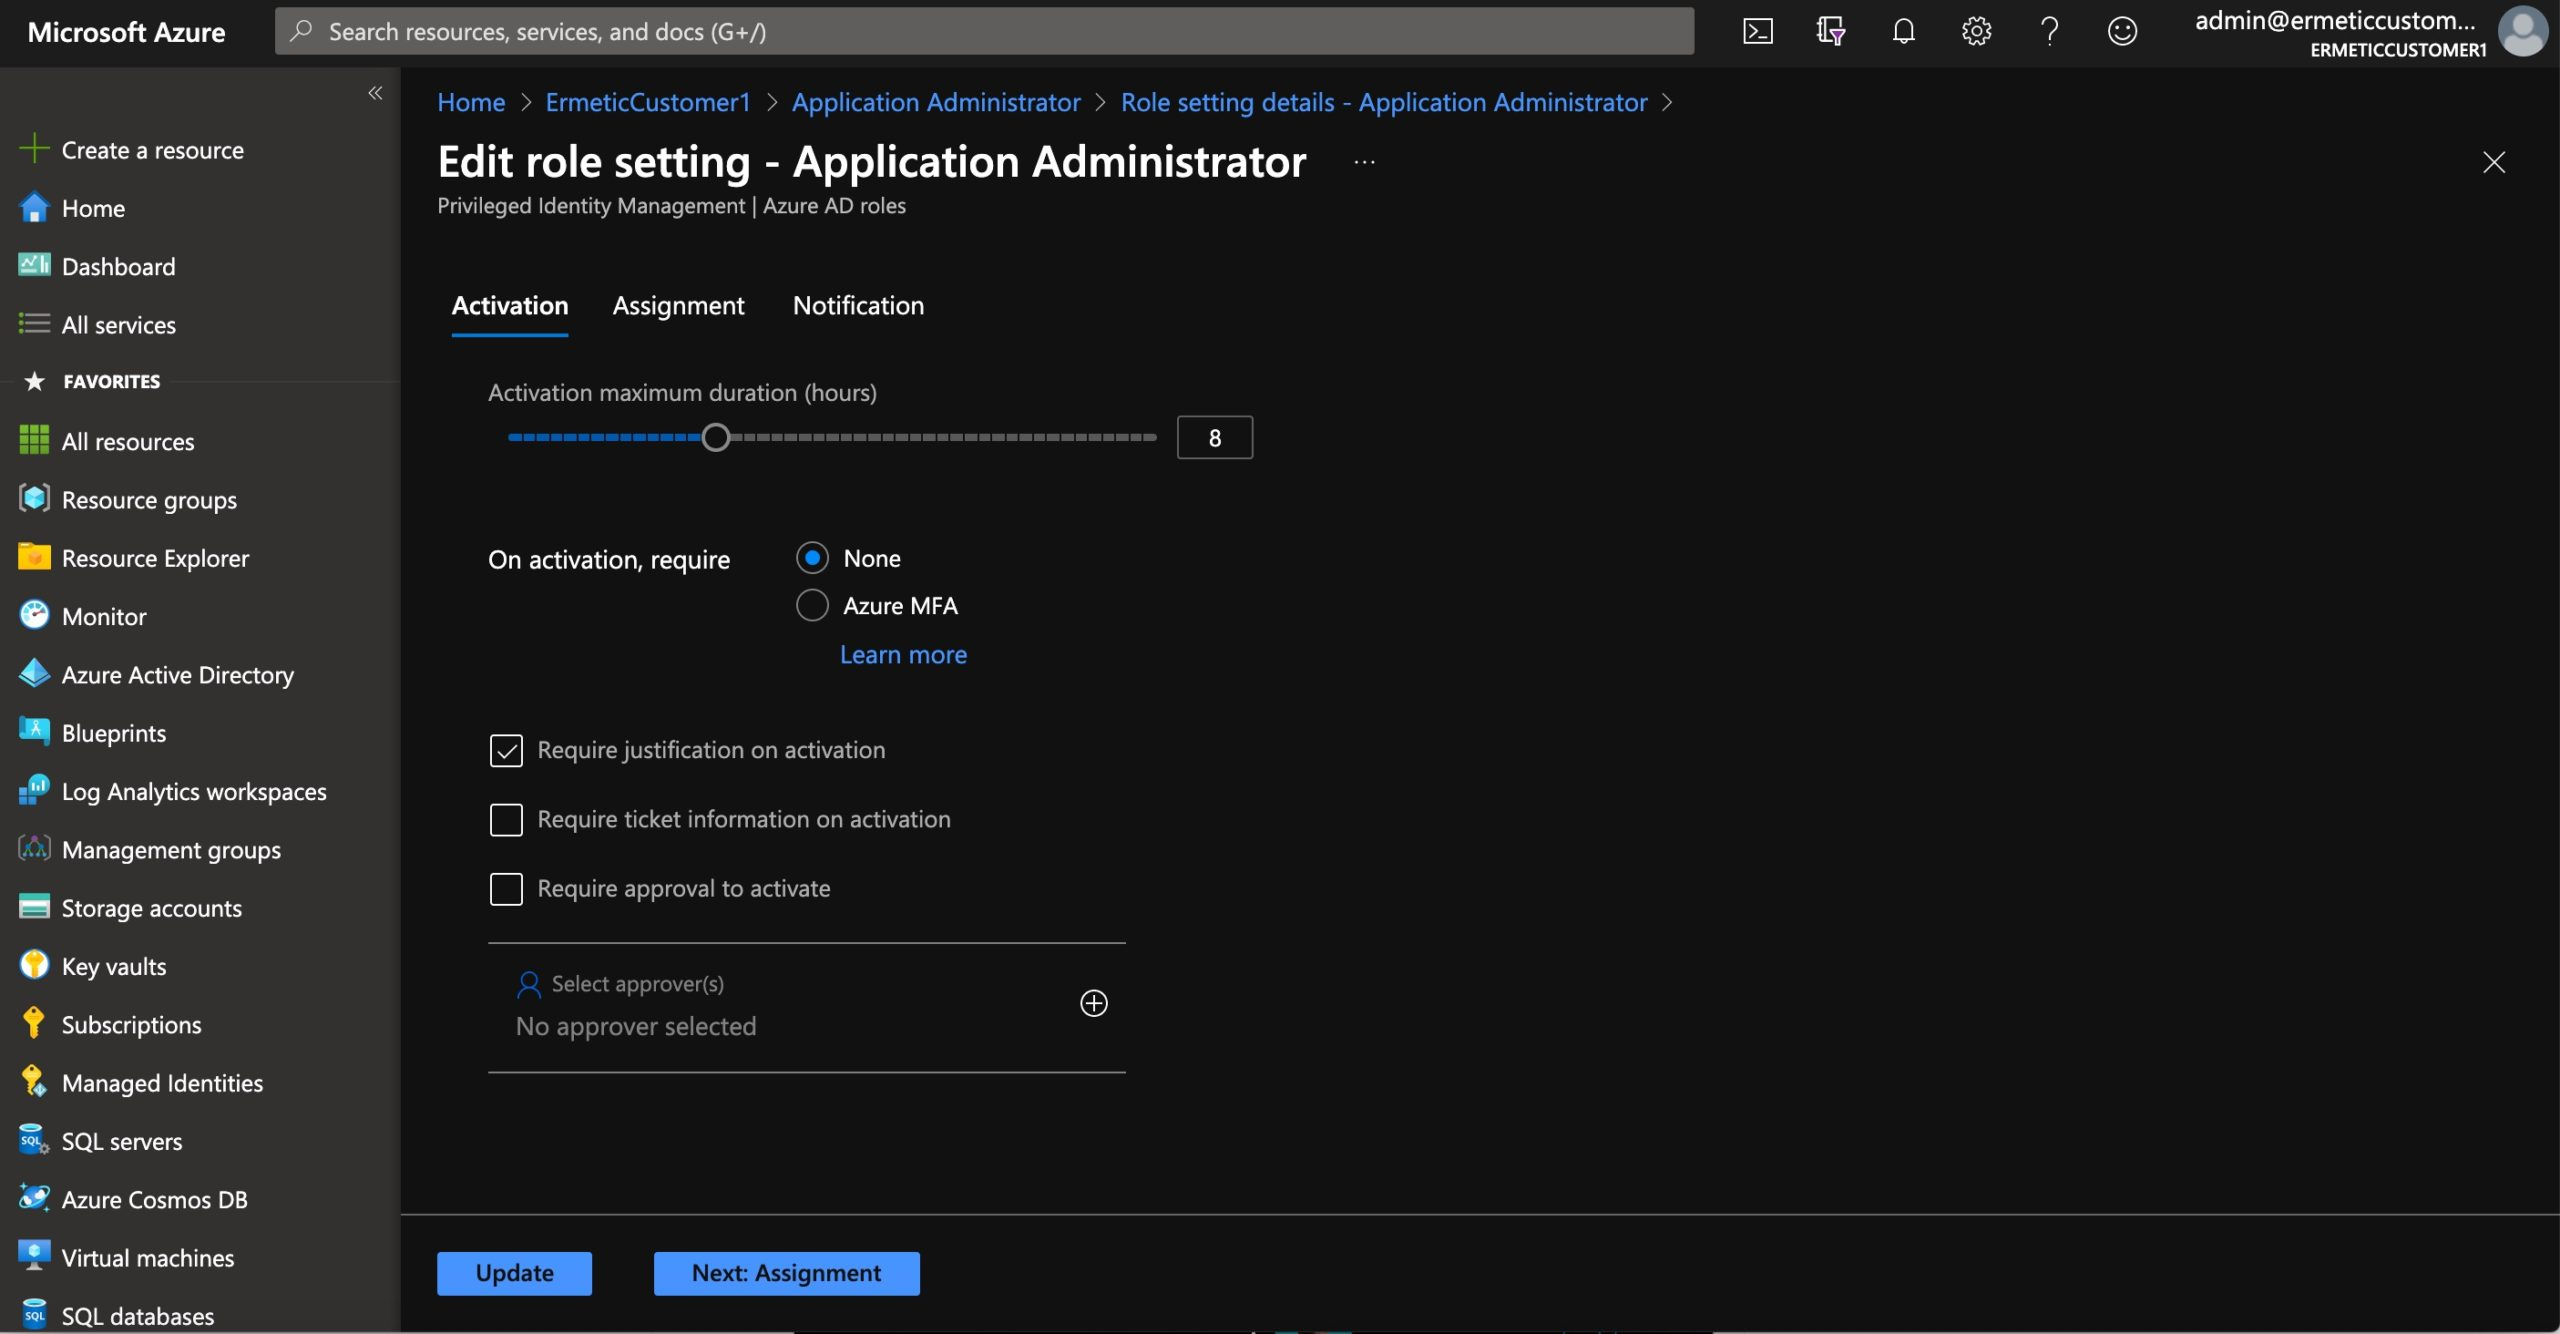 Figure 13 - Settings for a role in the Azure PIM tool